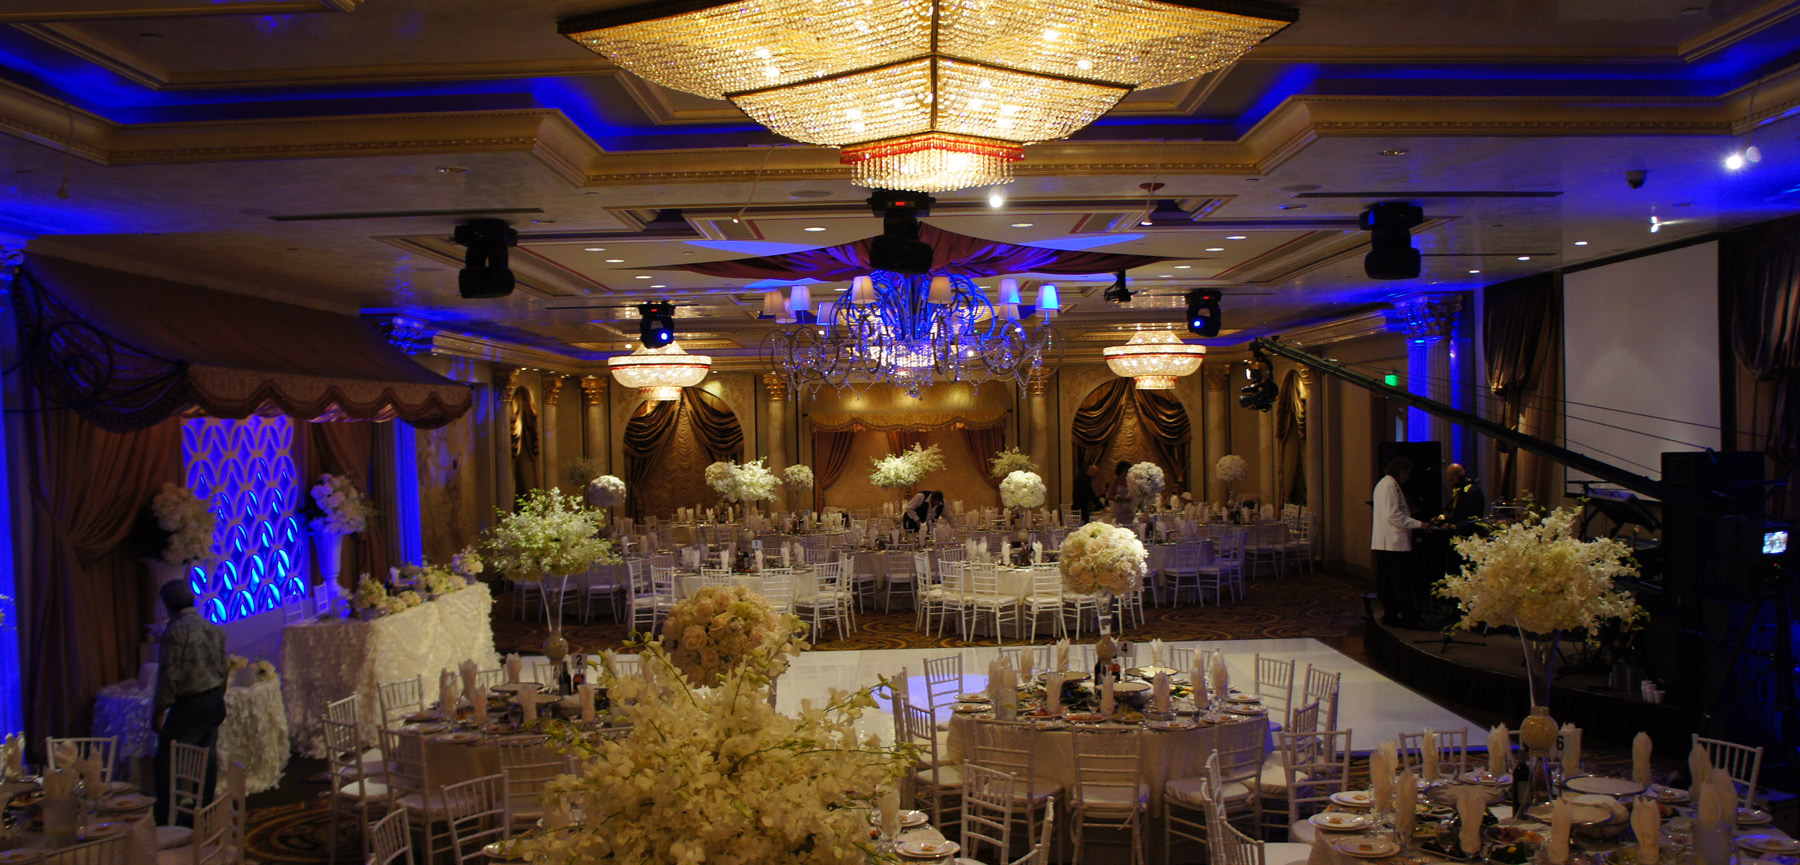 The De Luxe Ballroom